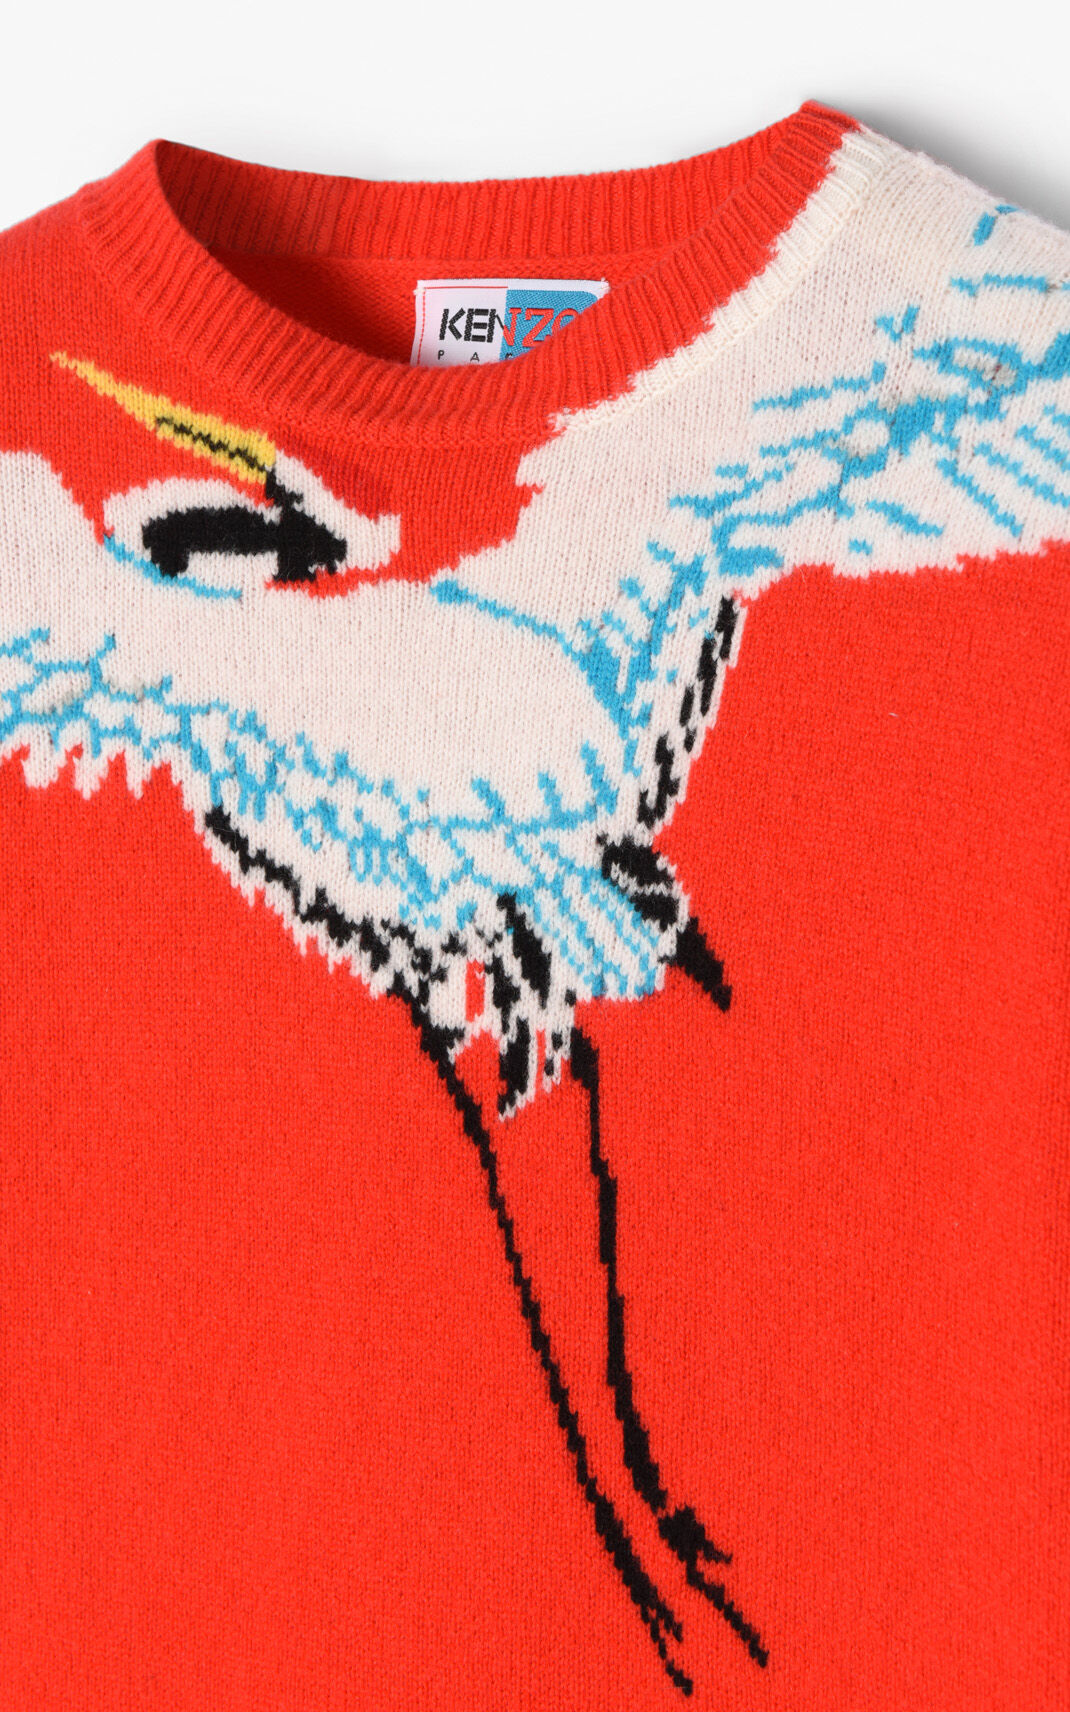 MEDIUM RED Crane' Sweater for men KENZO